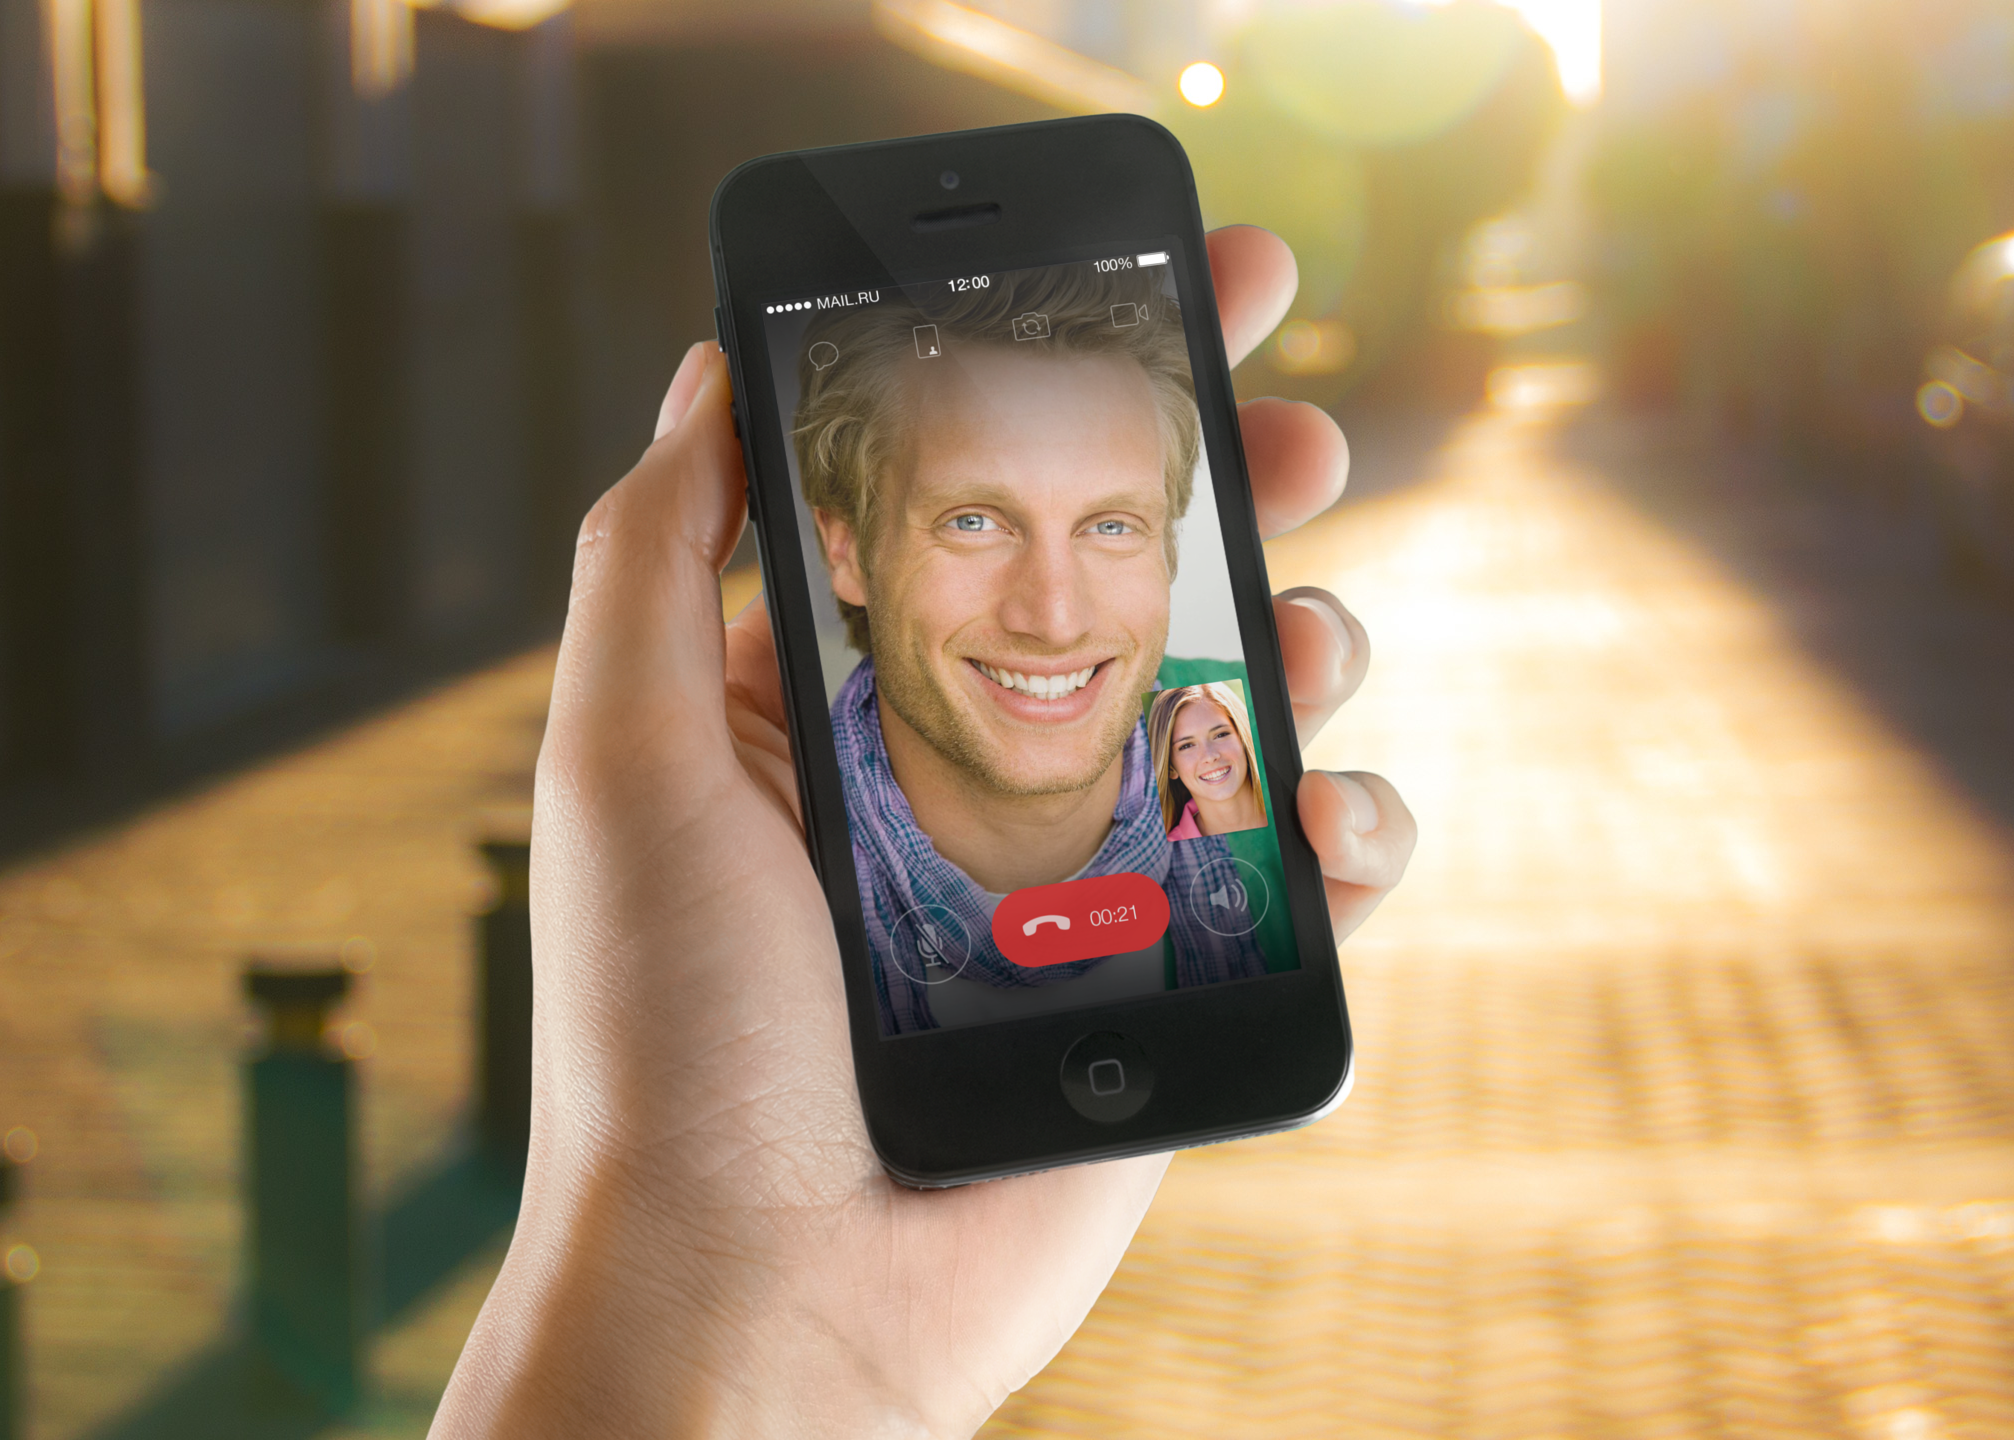 Belstar videocall mychat promo